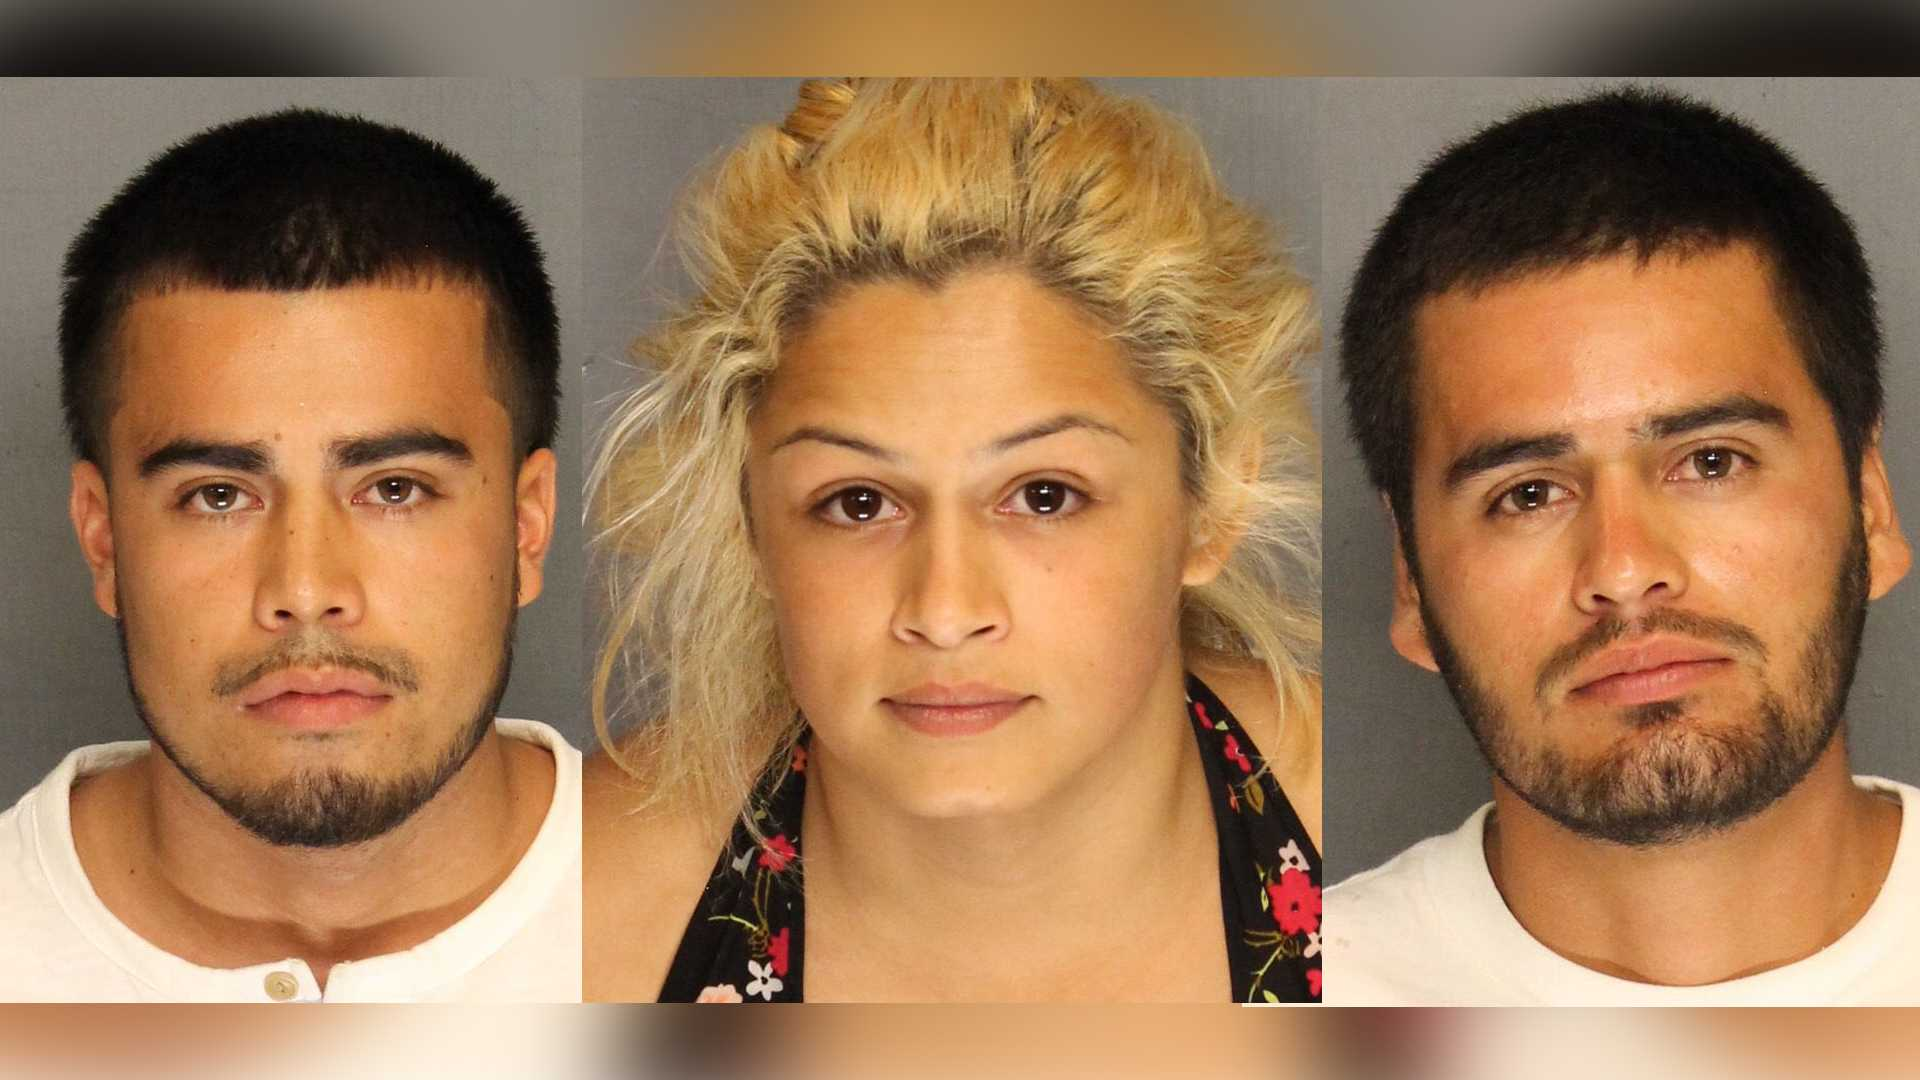 Carlos Hernandez, 20, Angie Torres, 22, and Juan Lopez, 22, were taken into custody Wednesday, June 29, 2017, in connection to a double homicide, the Stockton Police Department said.